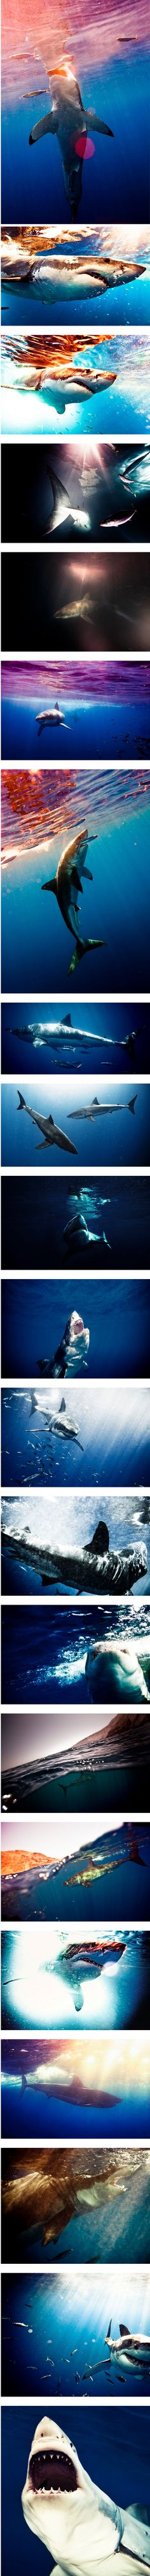 Sharks by Michael Muller amazing pictures of a great white. Most Beautiful Animals, Life Is Beautiful, Beautiful Creatures, Beautiful Images, Orcas, Save The Sharks, Shark Pictures, Beyond The Sea, Great White Shark